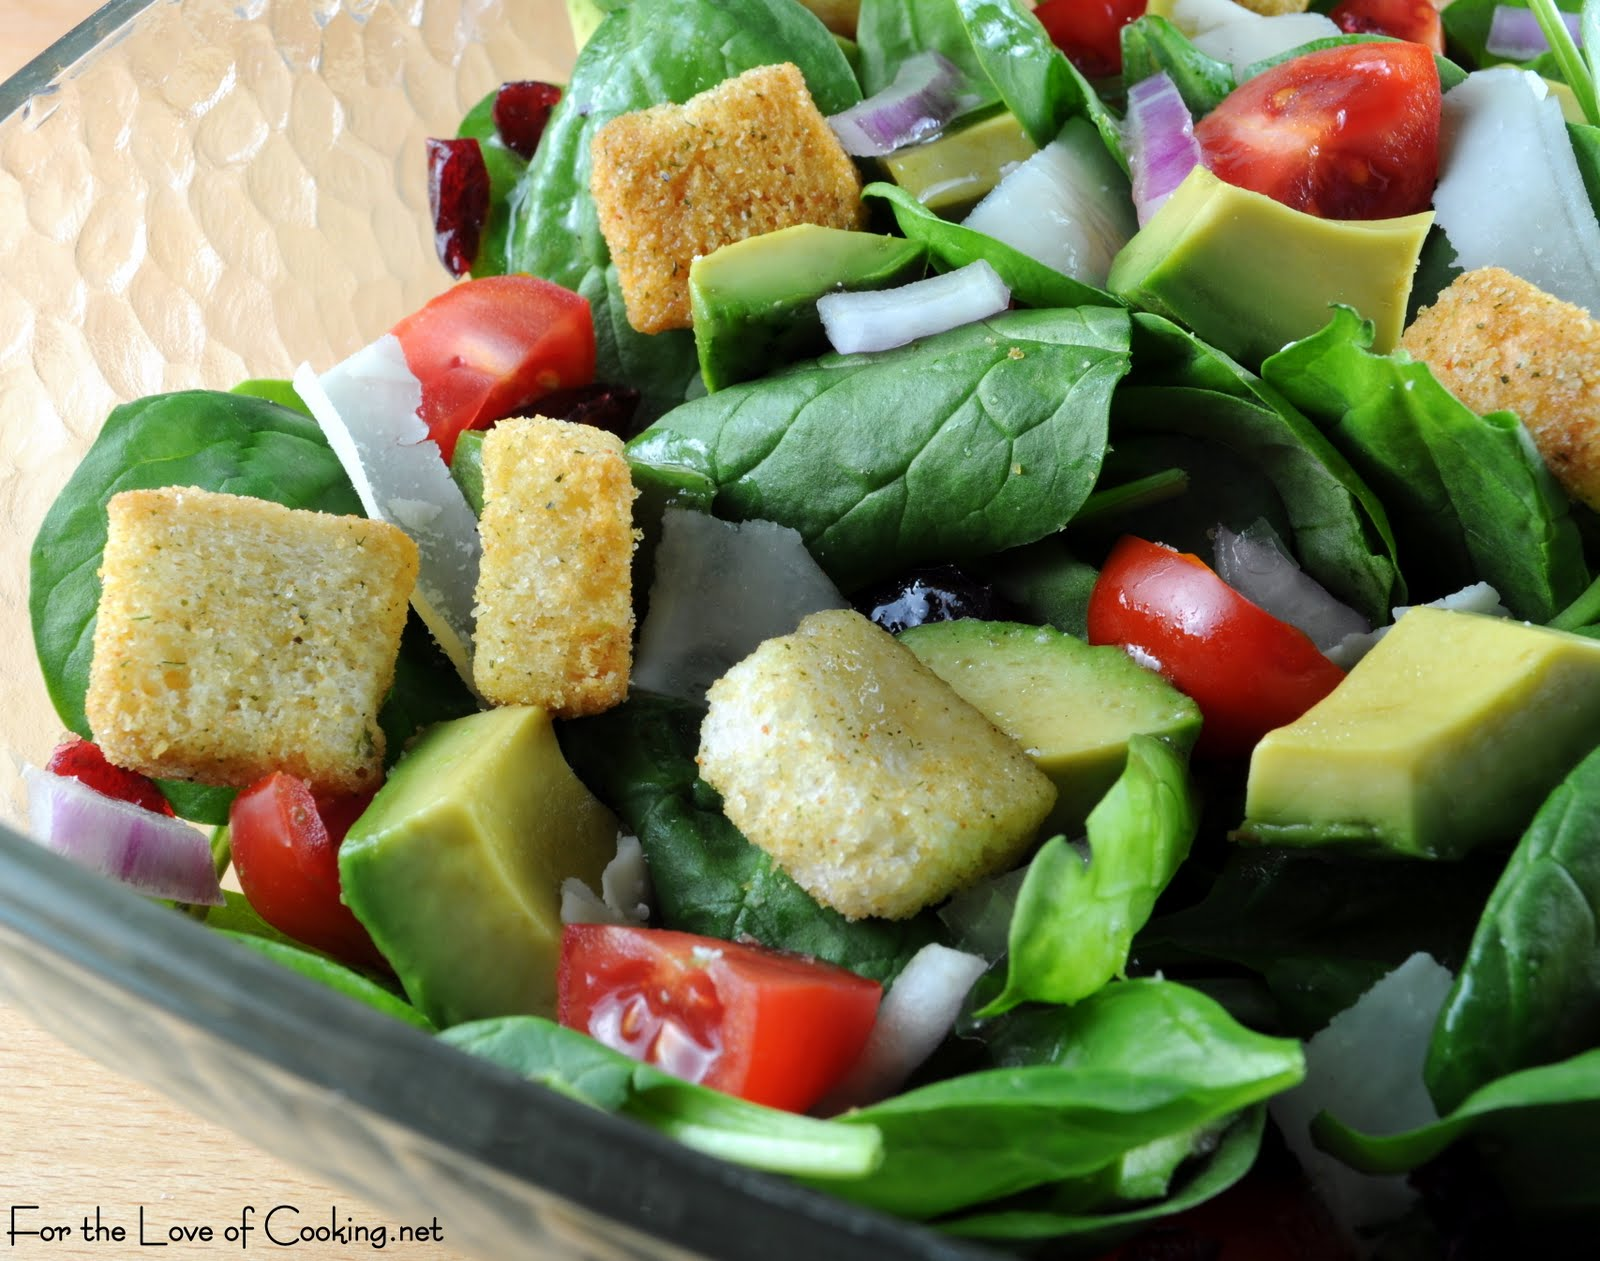 Spinach and Avocado Salad | For the Love of Cooking